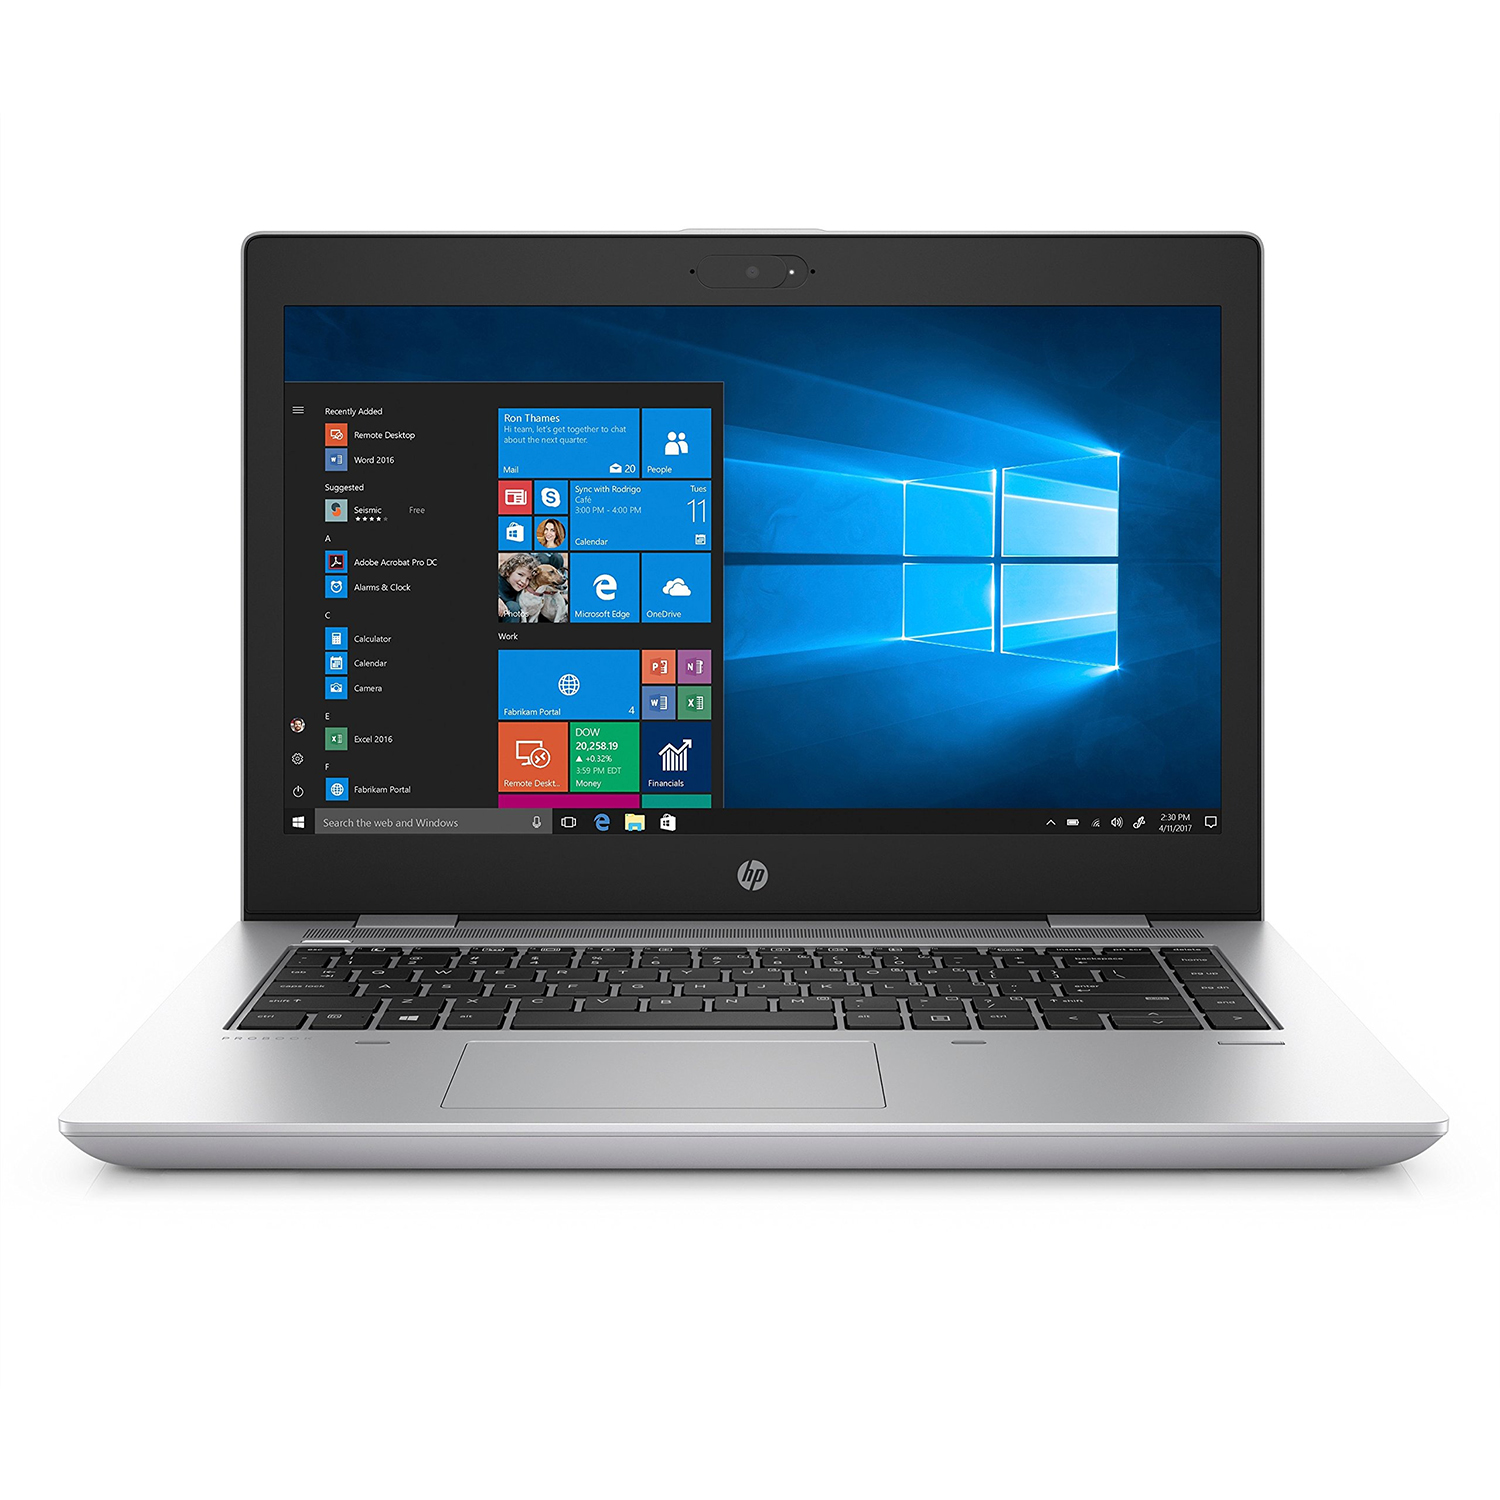 Laptop Cũ HP Probook 640 G4 - Inttel Core i5